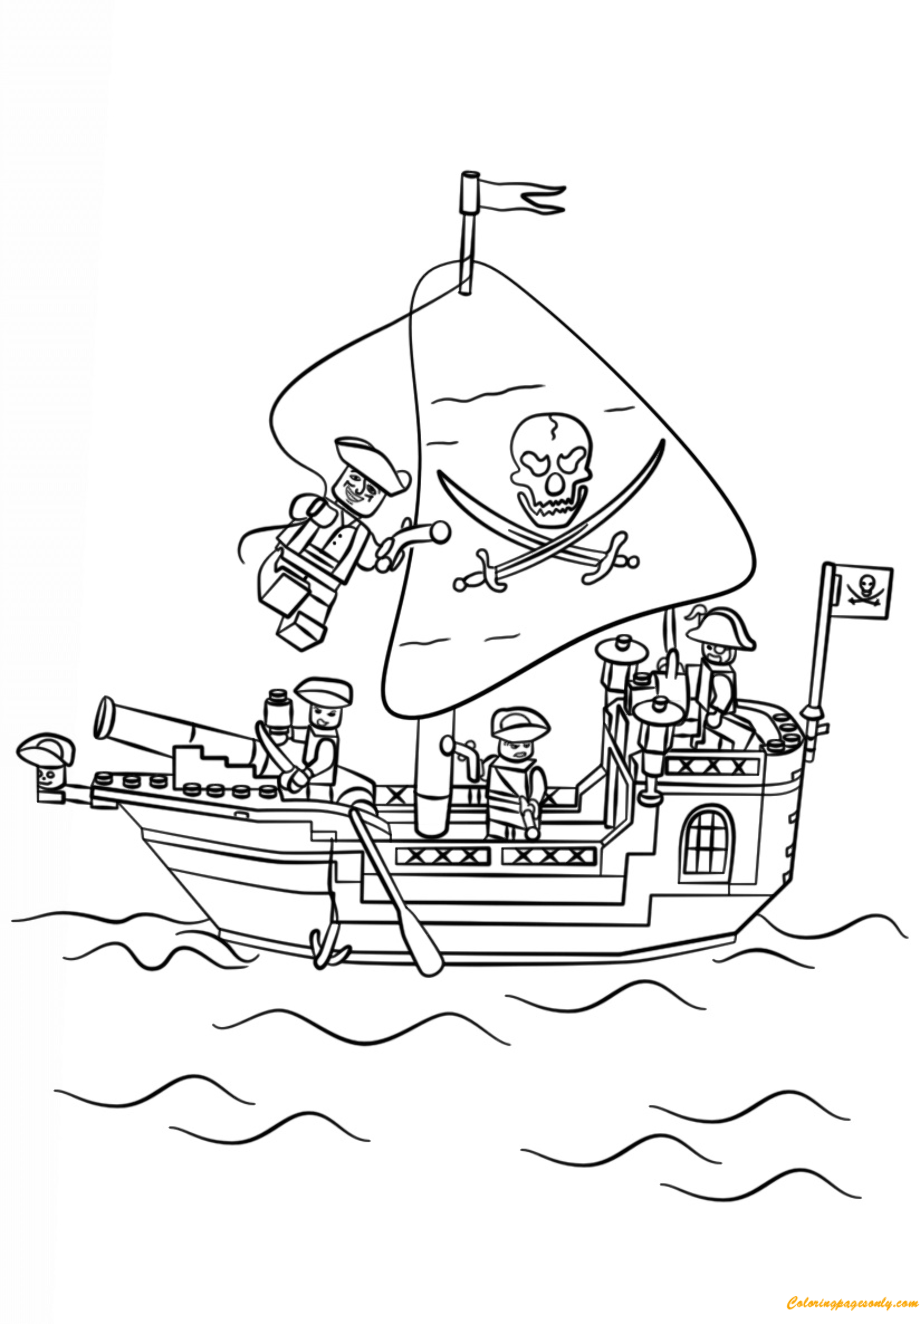 paw patrol boat coloring page get this paw patrol preschool coloring pages to print boat patrol page paw coloring